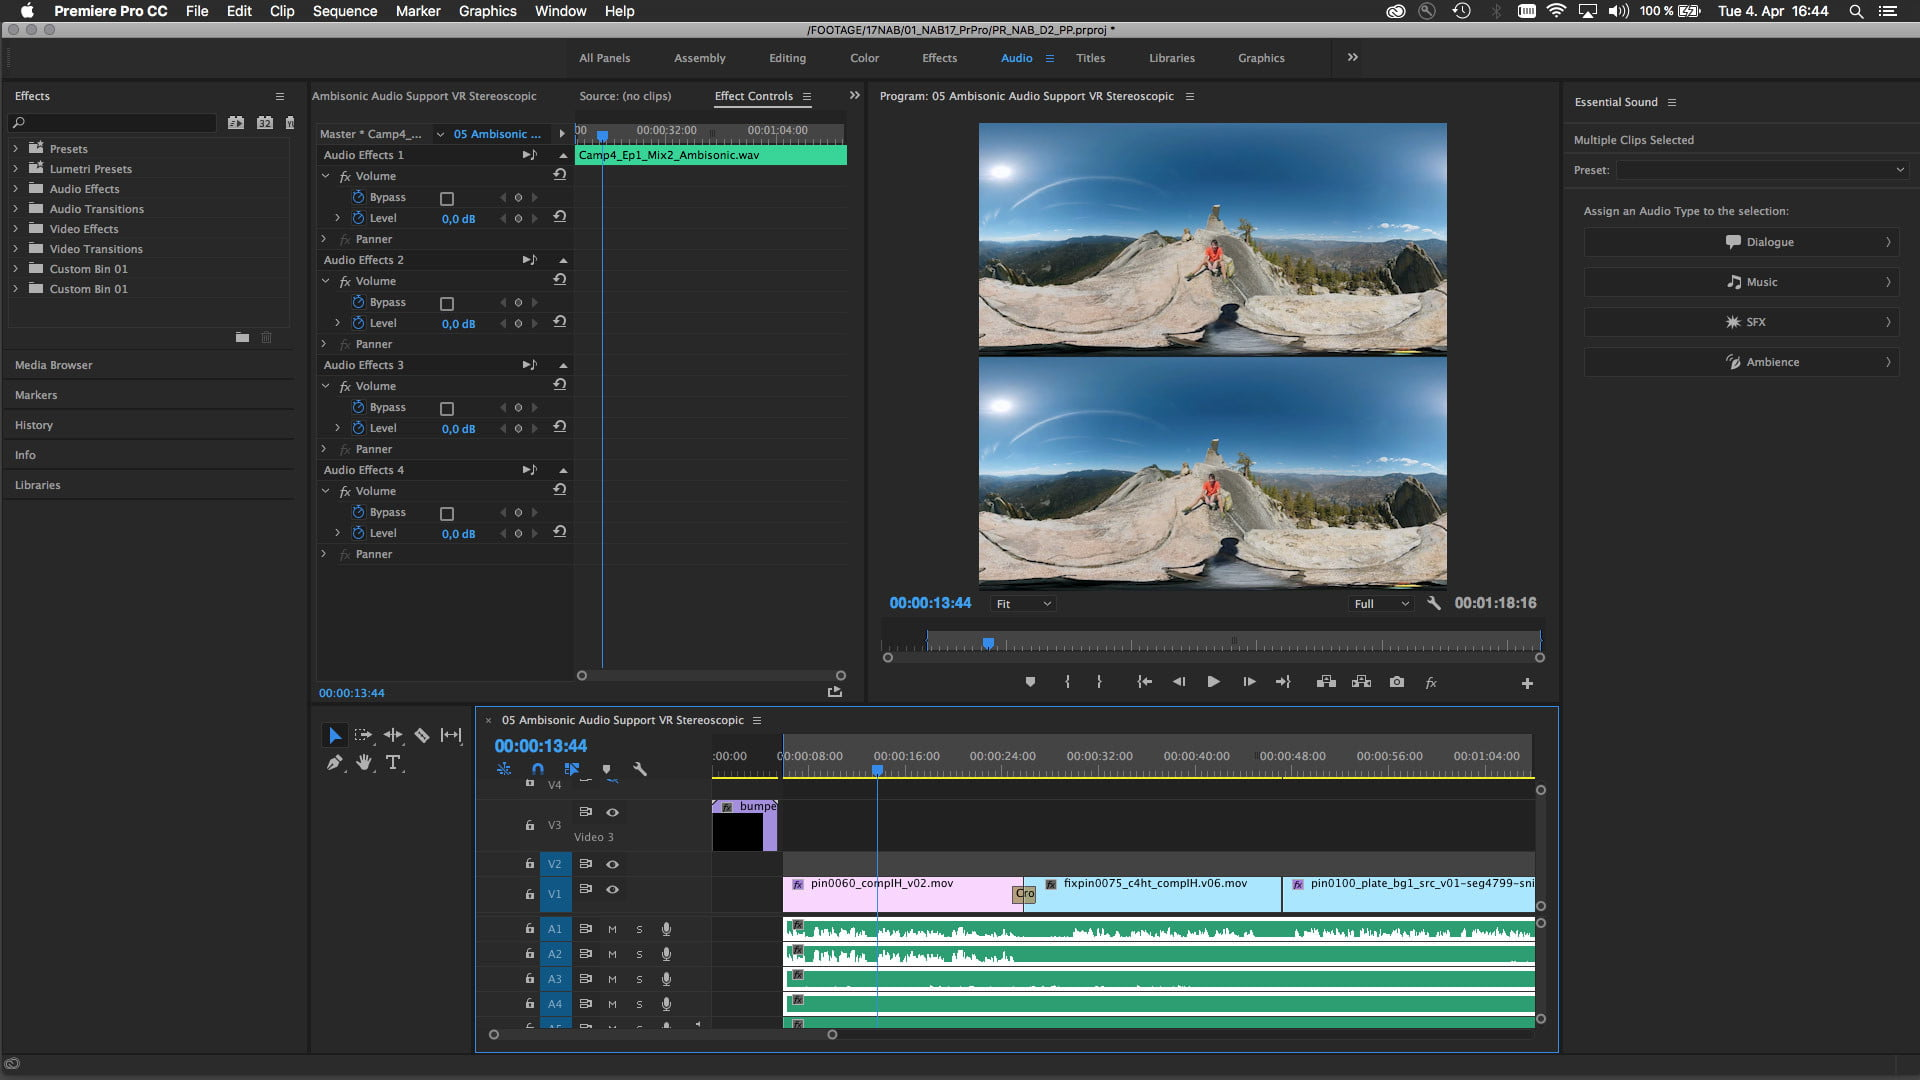 how to watch videos after editing in premiere pro